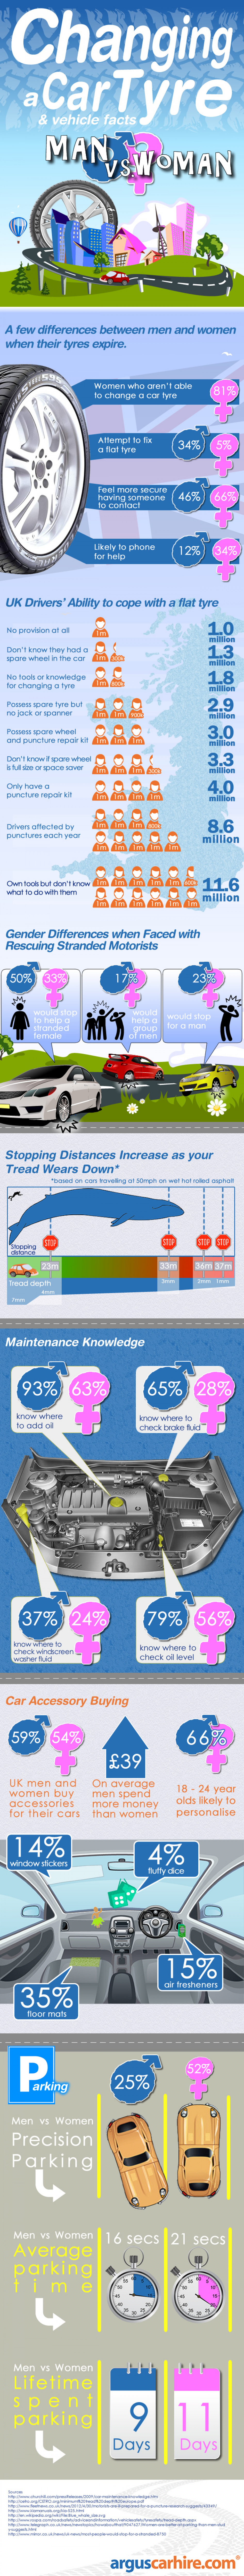 Man vs Woman - Changing a car tyre Infographic